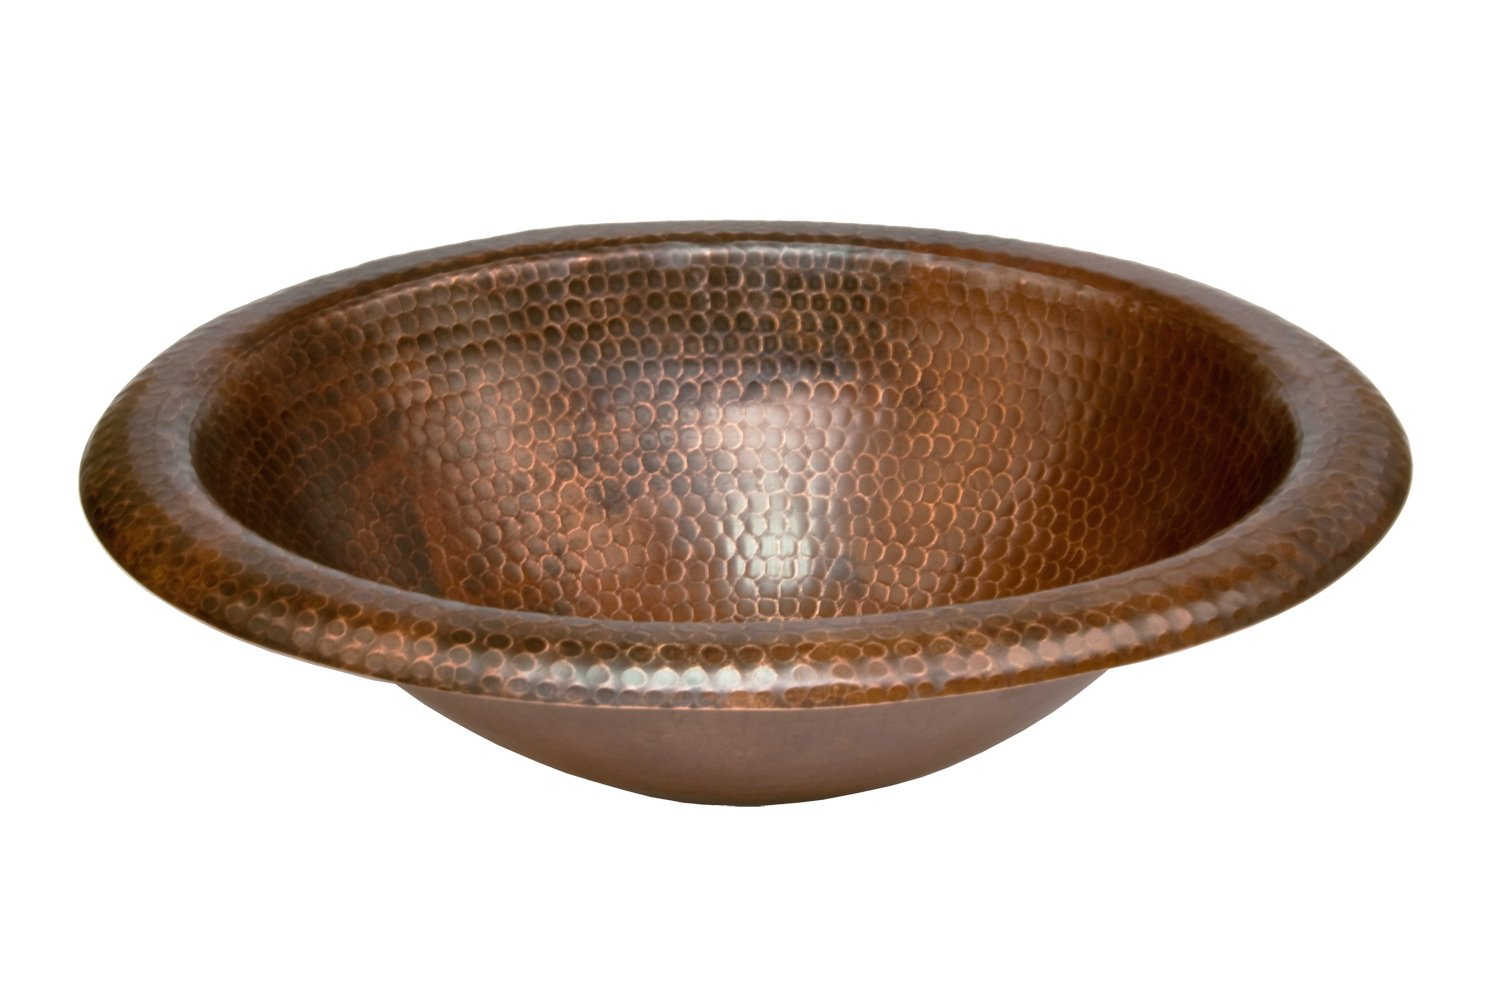 Premier Copper Products LO18RDB Wide Rim Oval Self Rimming Hammered Copper Sink, Oil Rubbed Bronze by Premier Copper Products